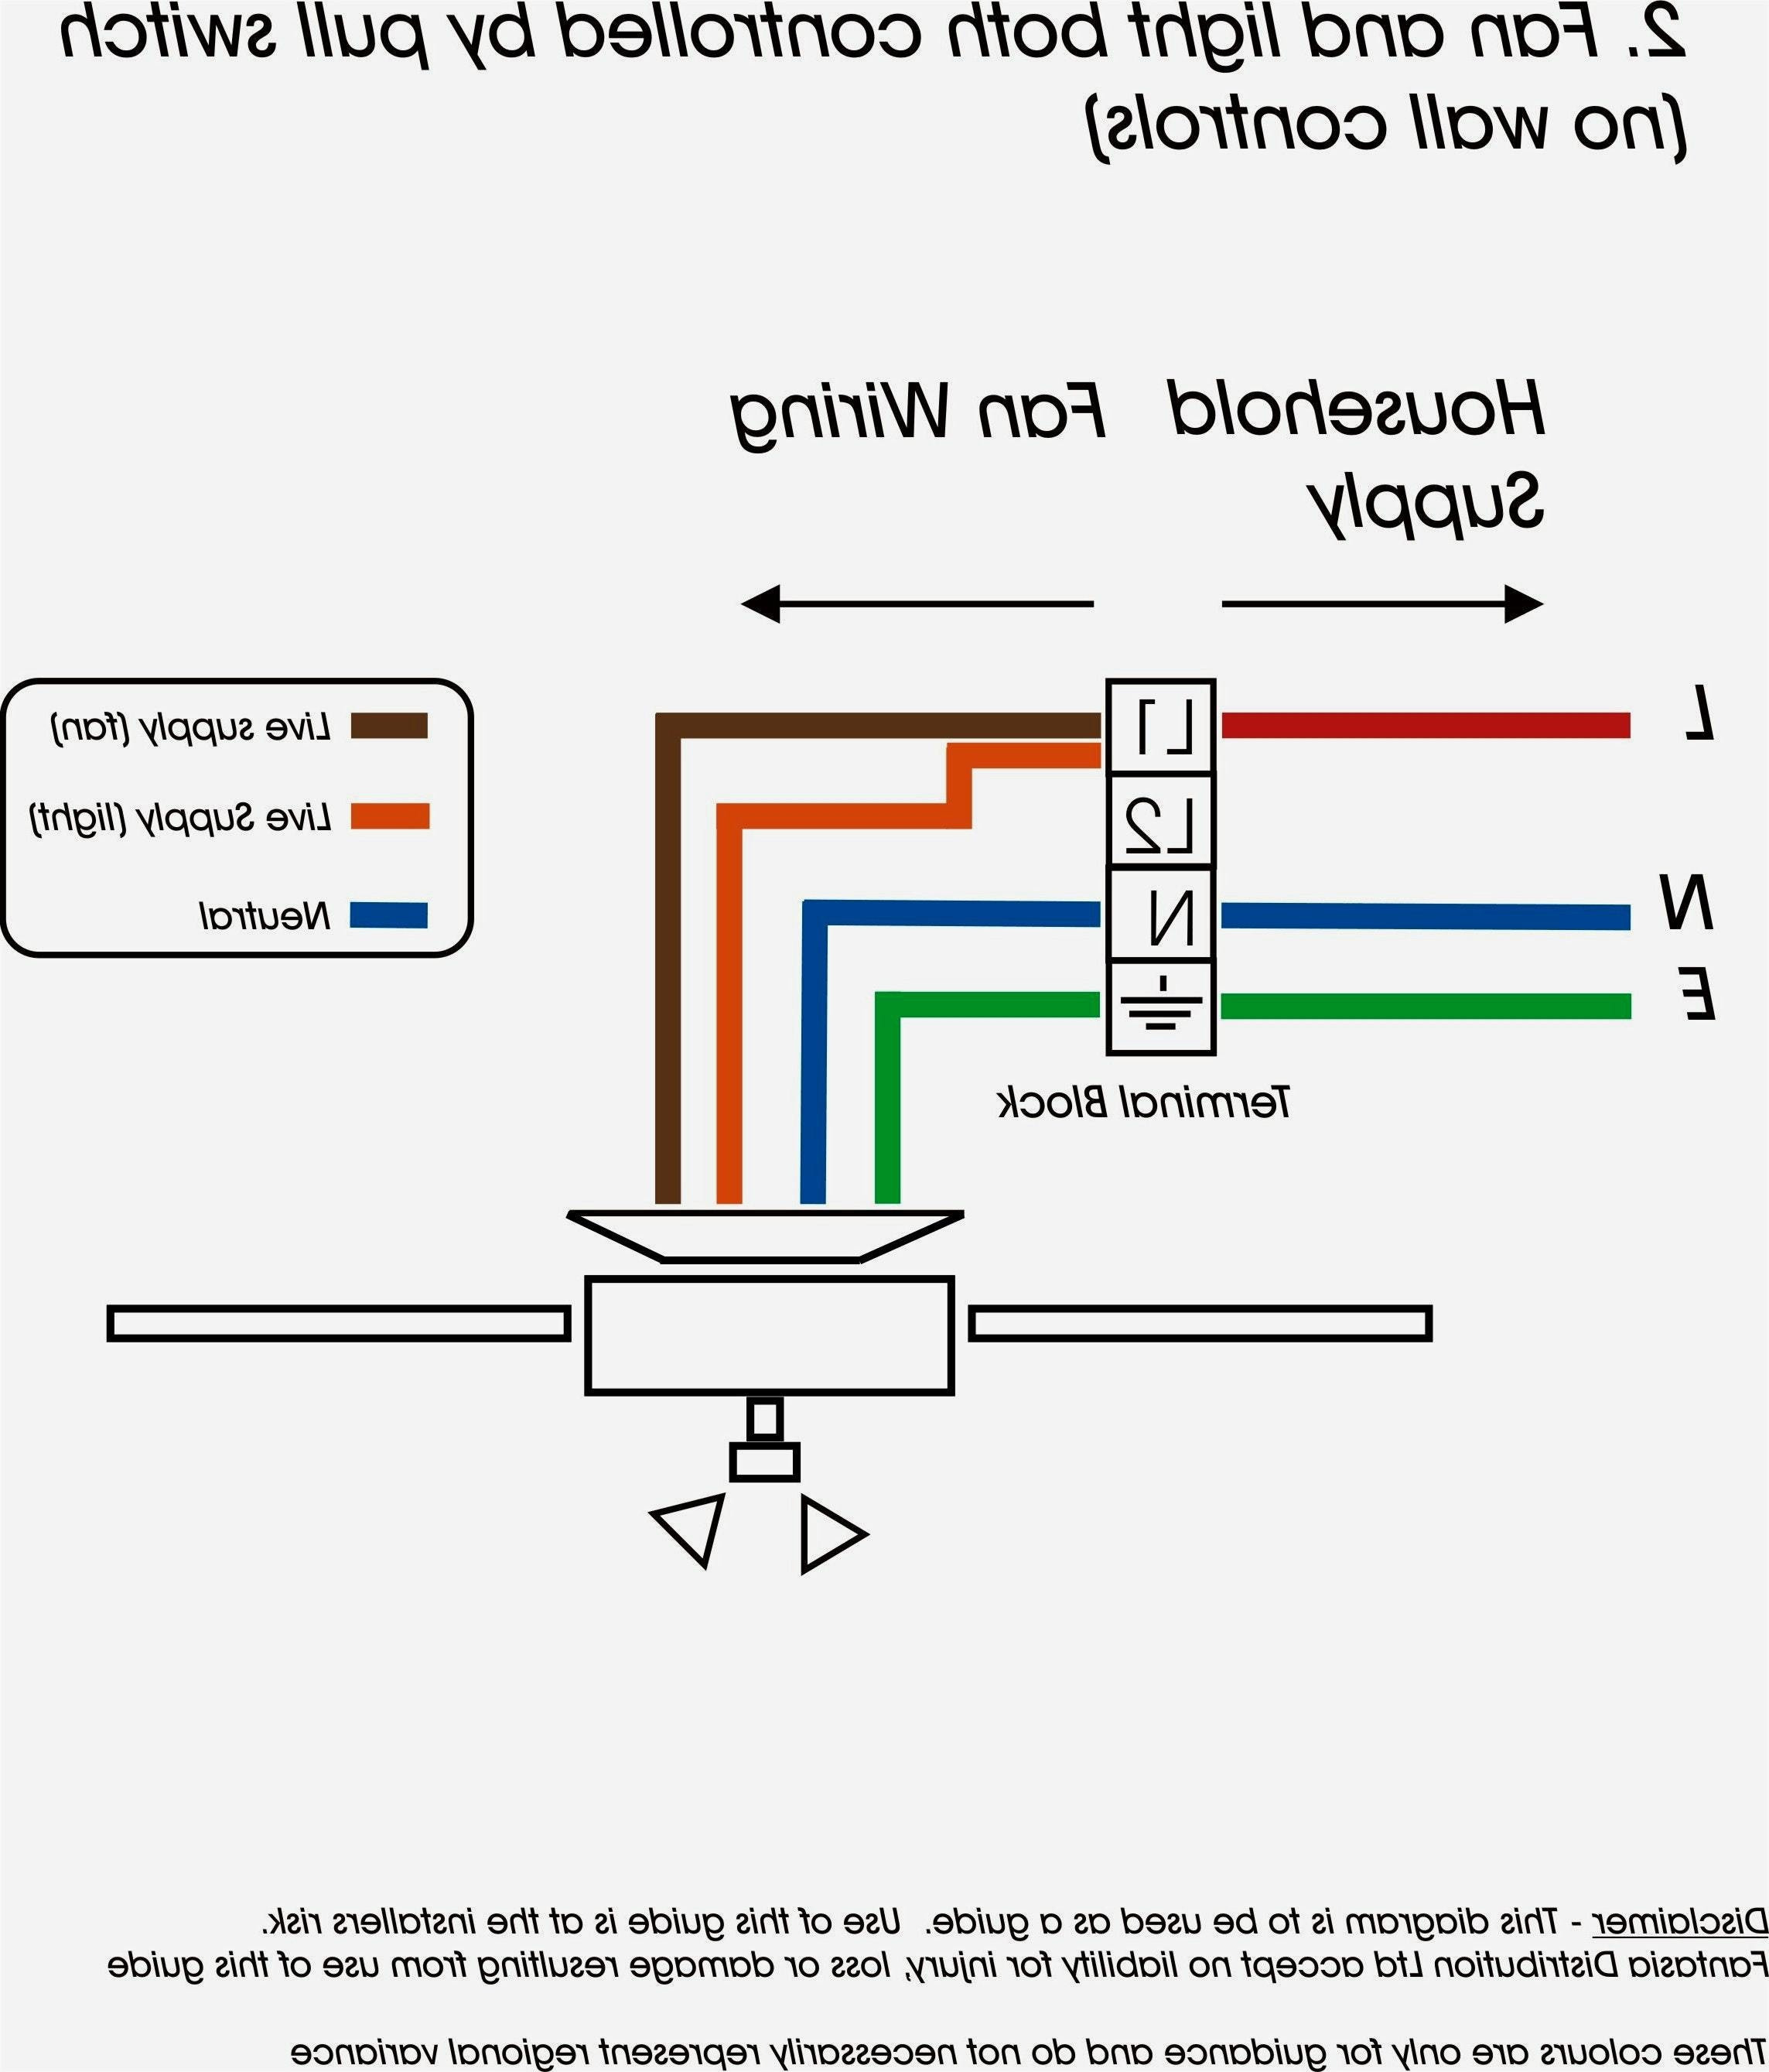 Ford 7 Pin Trailer Wiring Diagram Simplified Shapes 7 Pin Trailer - Ford 7 Pin Trailer Wiring Diagram